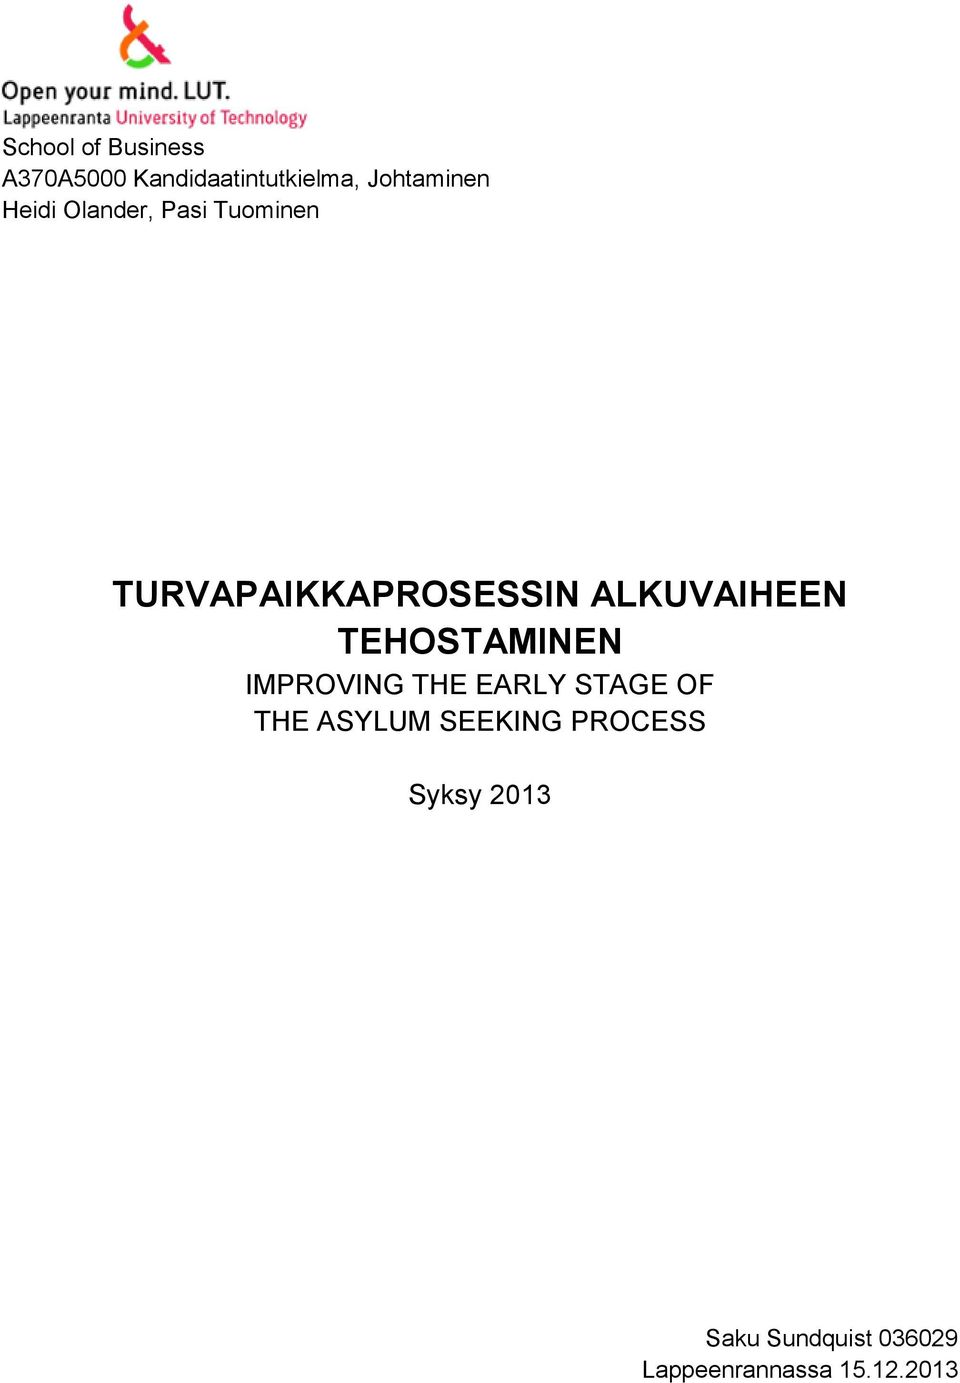 TEHOSTAMINEN IMPROVING THE EARLY STAGE OF THE ASYLUM SEEKING